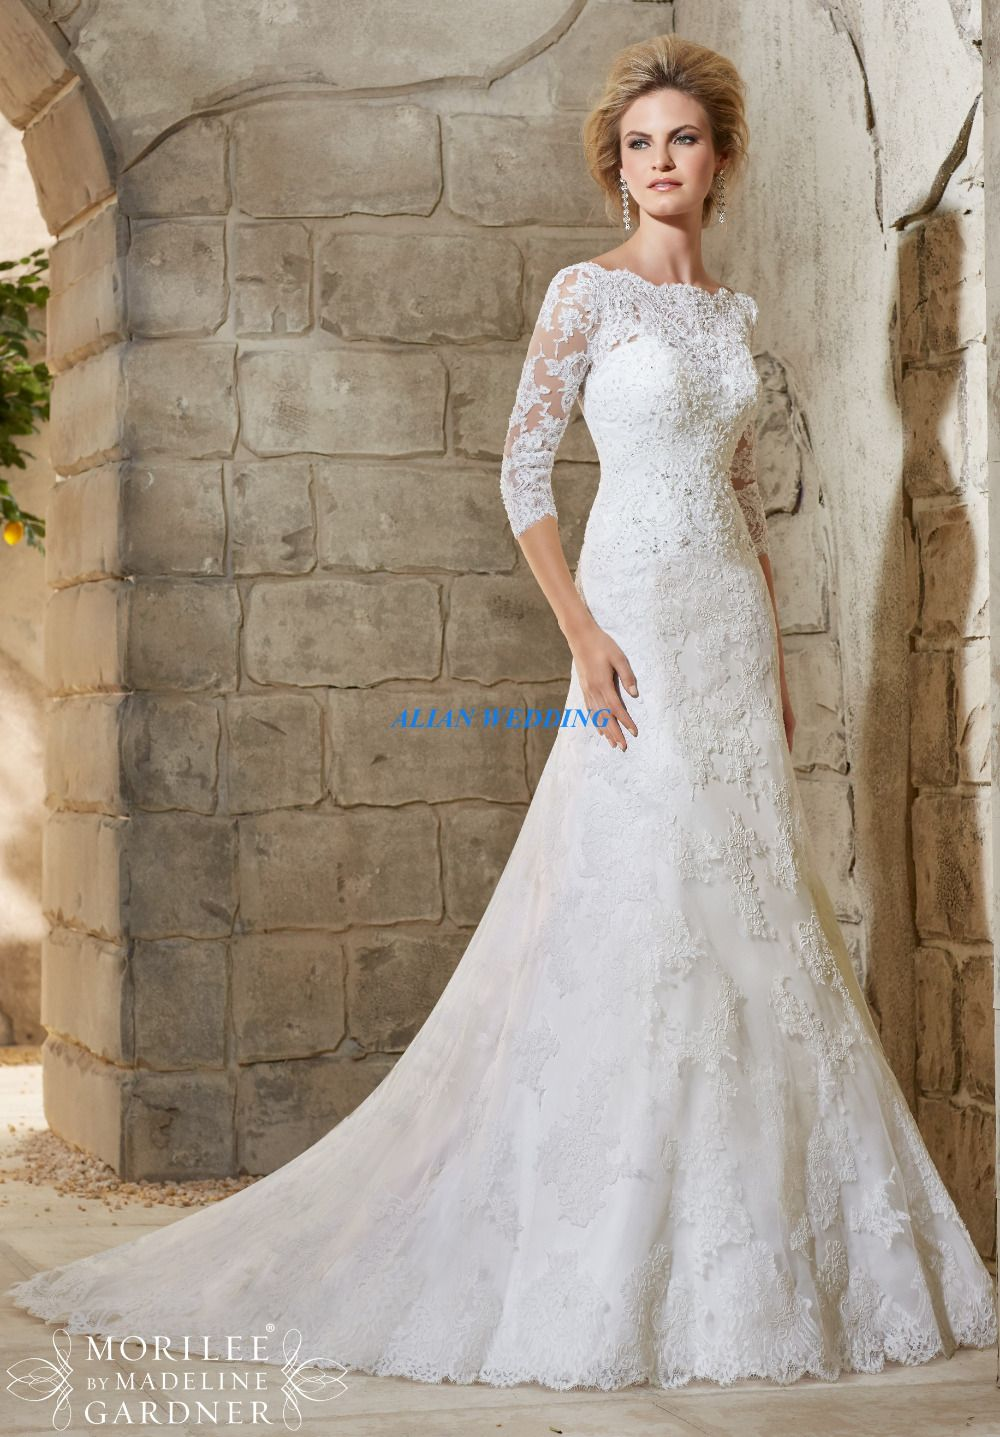 3 4 Sleeve Wedding Gowns Mermaid Vestidos De Novia High Neck Lace Top Beading Bridal Gowns Low Back T Wedding Gowns Lace Wedding Dresses Mori Lee Wedding Dress